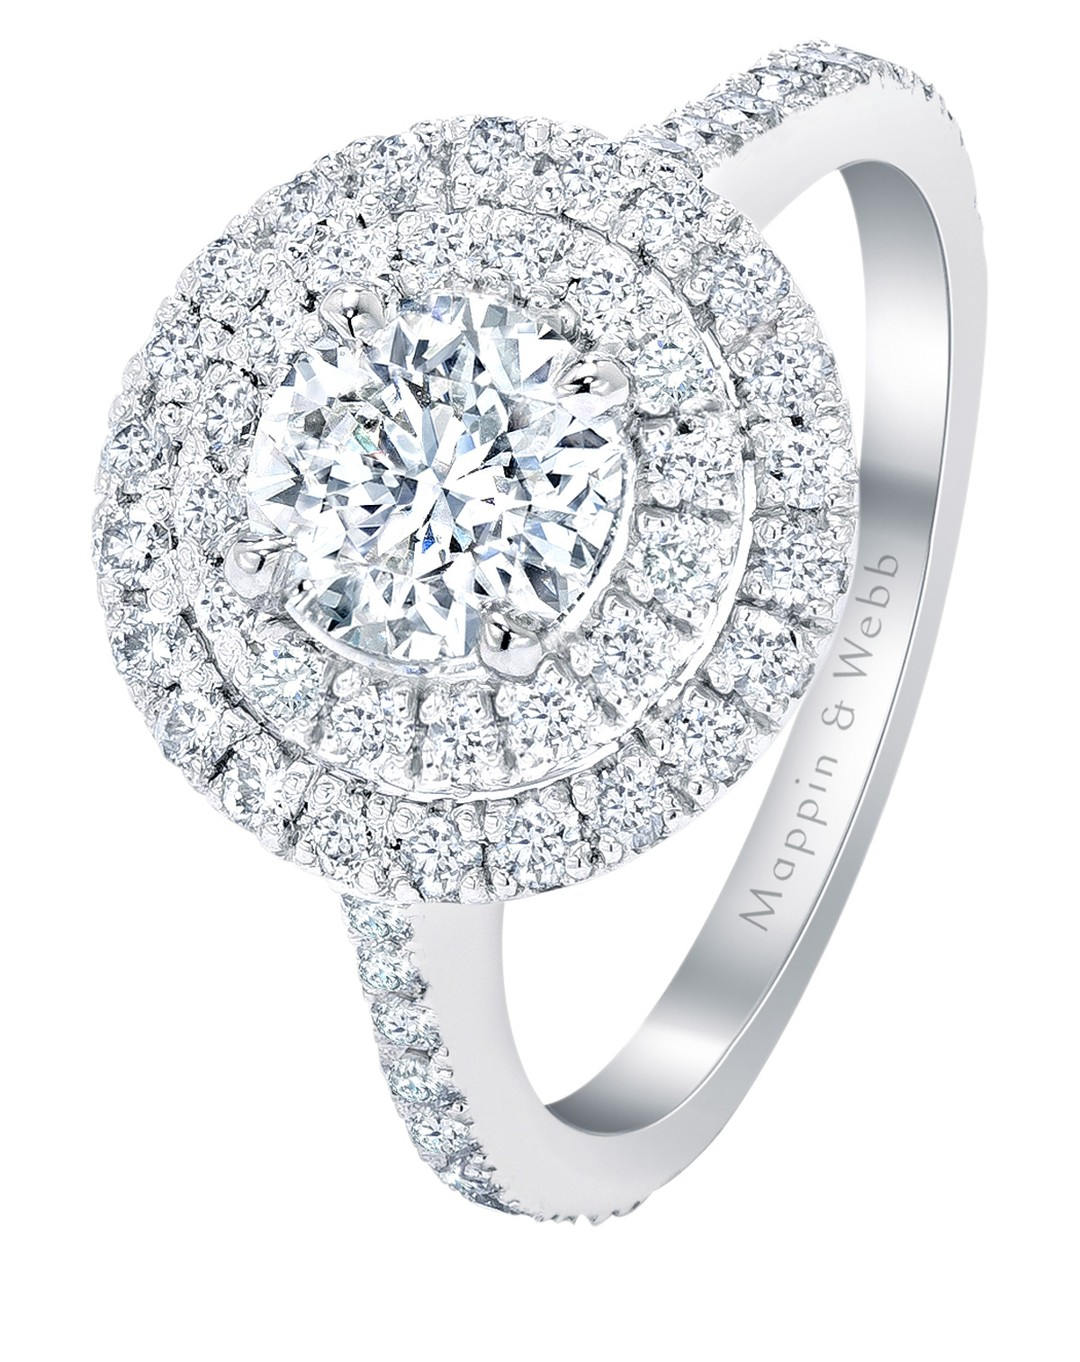 Mappin & Webb Alba diamond engagement ring_20130926_Zoom